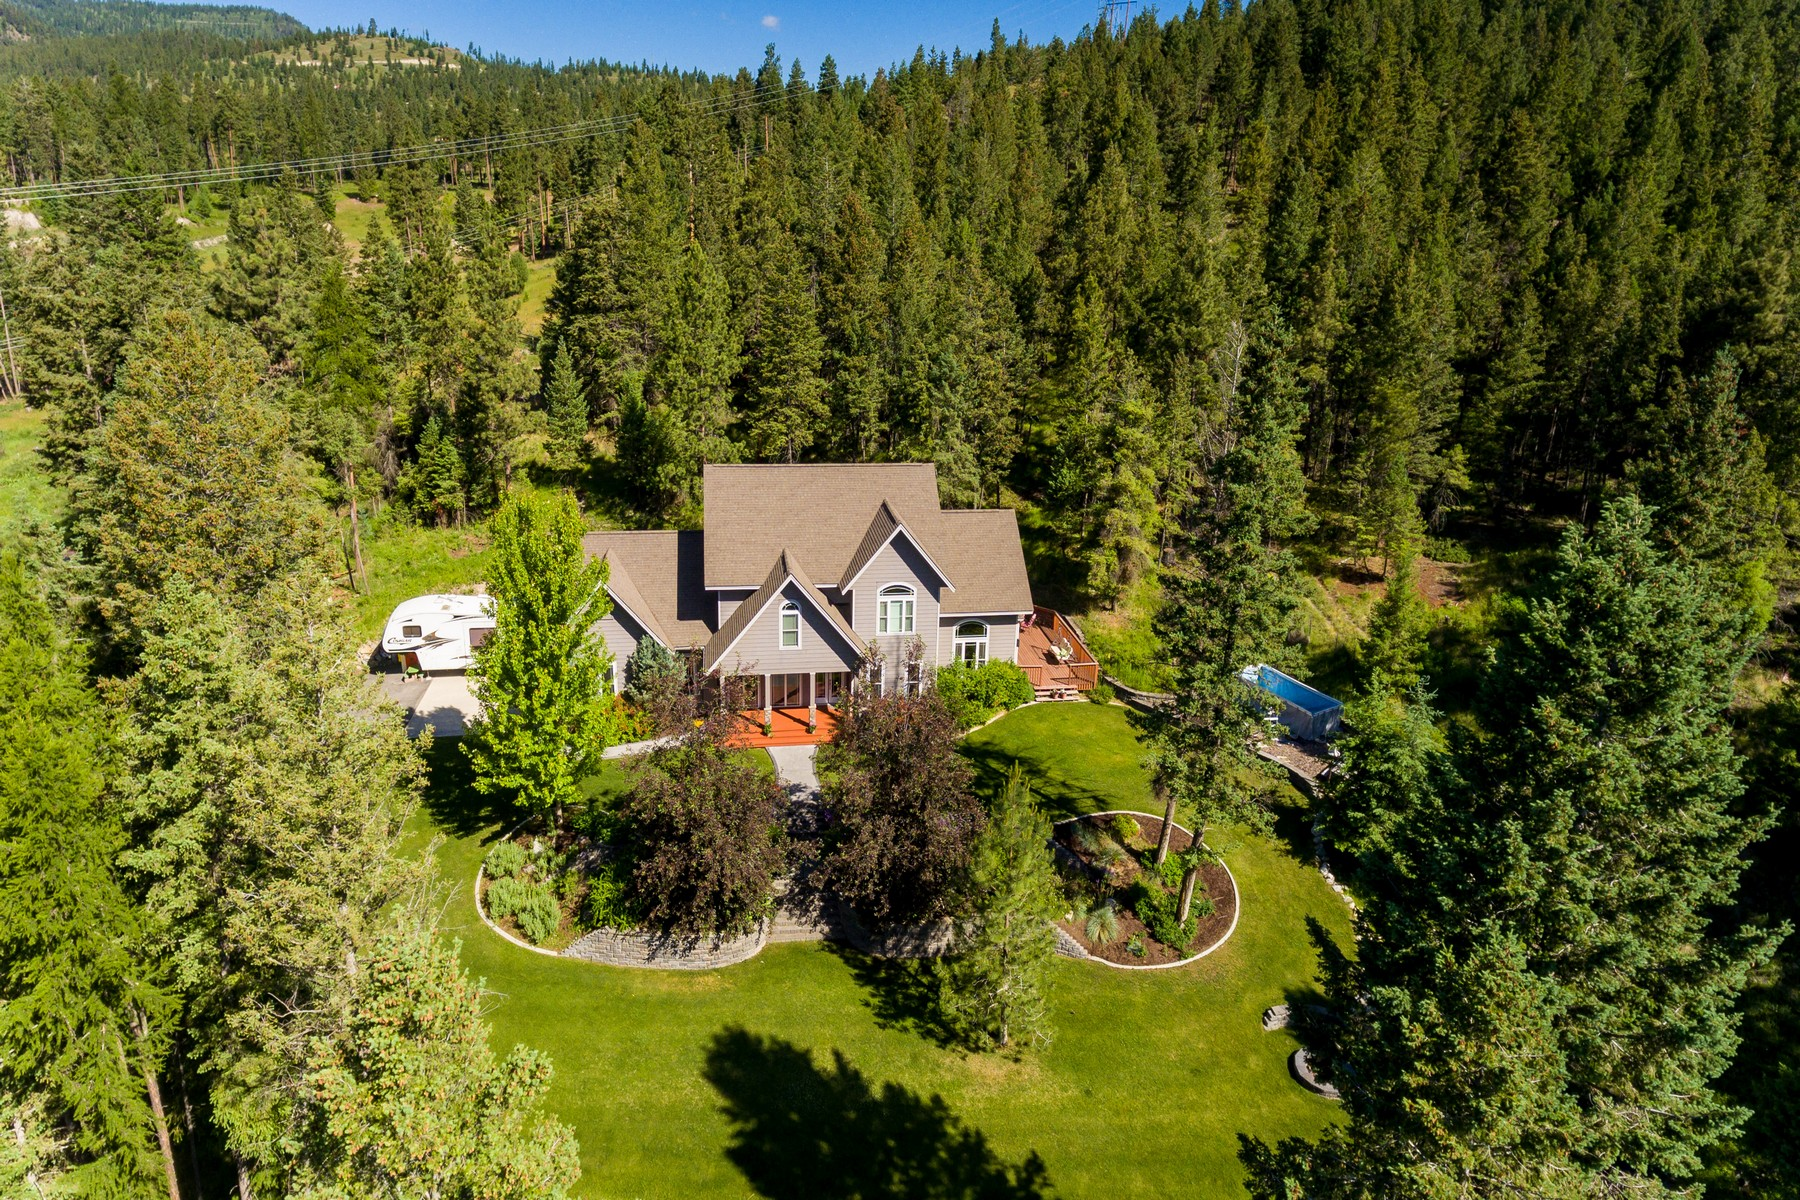 Single Family Home for Active at 250 Westridge Drive 250 Westridge Drive Somers, Montana 59932 United States